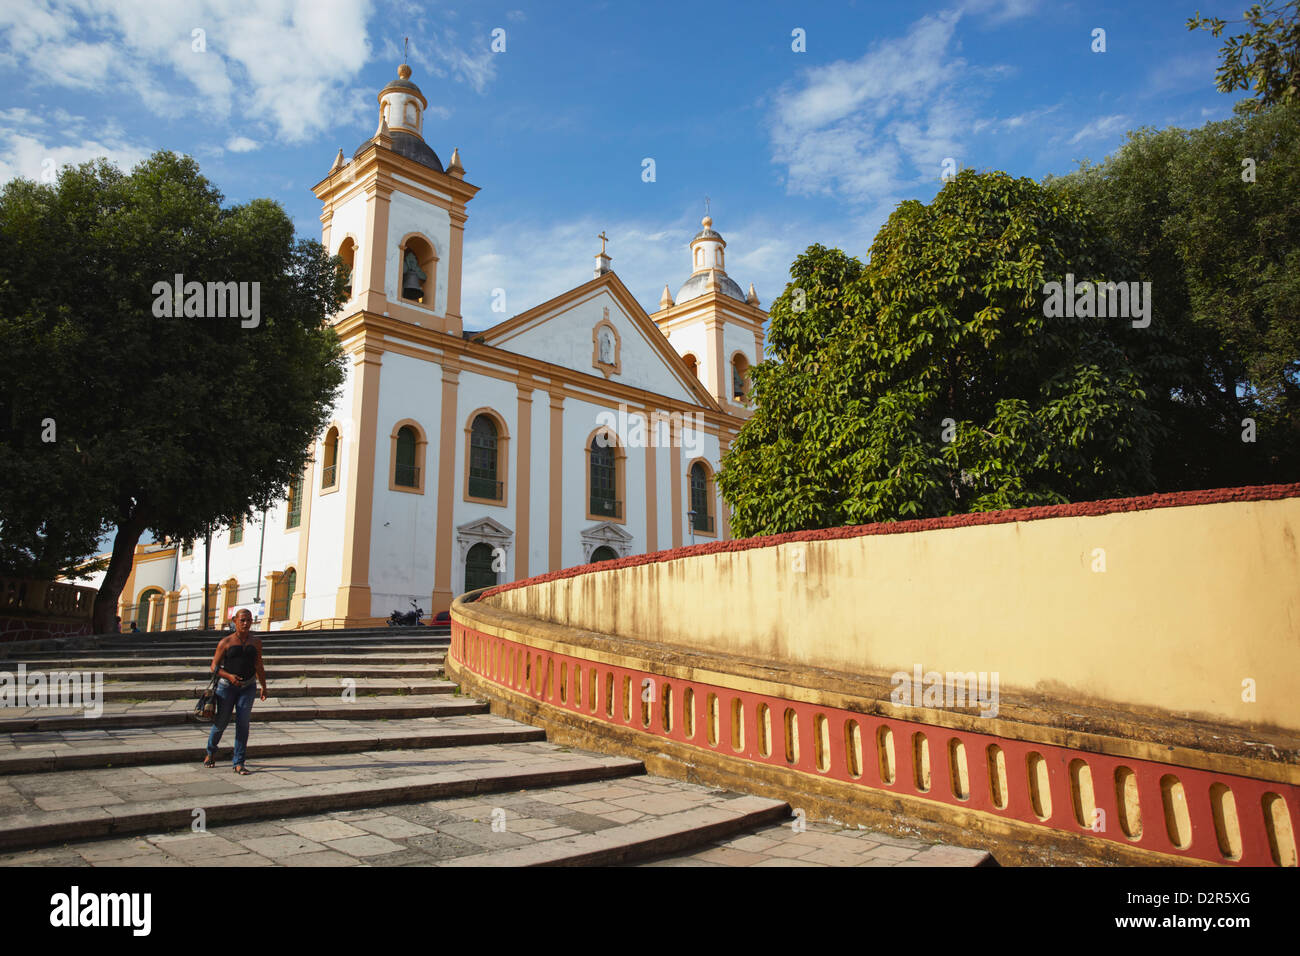 Metropolitan Cathedral of Our Lady of Conceicao, Manaus, Amazonas, Brazil, South America - Stock Image